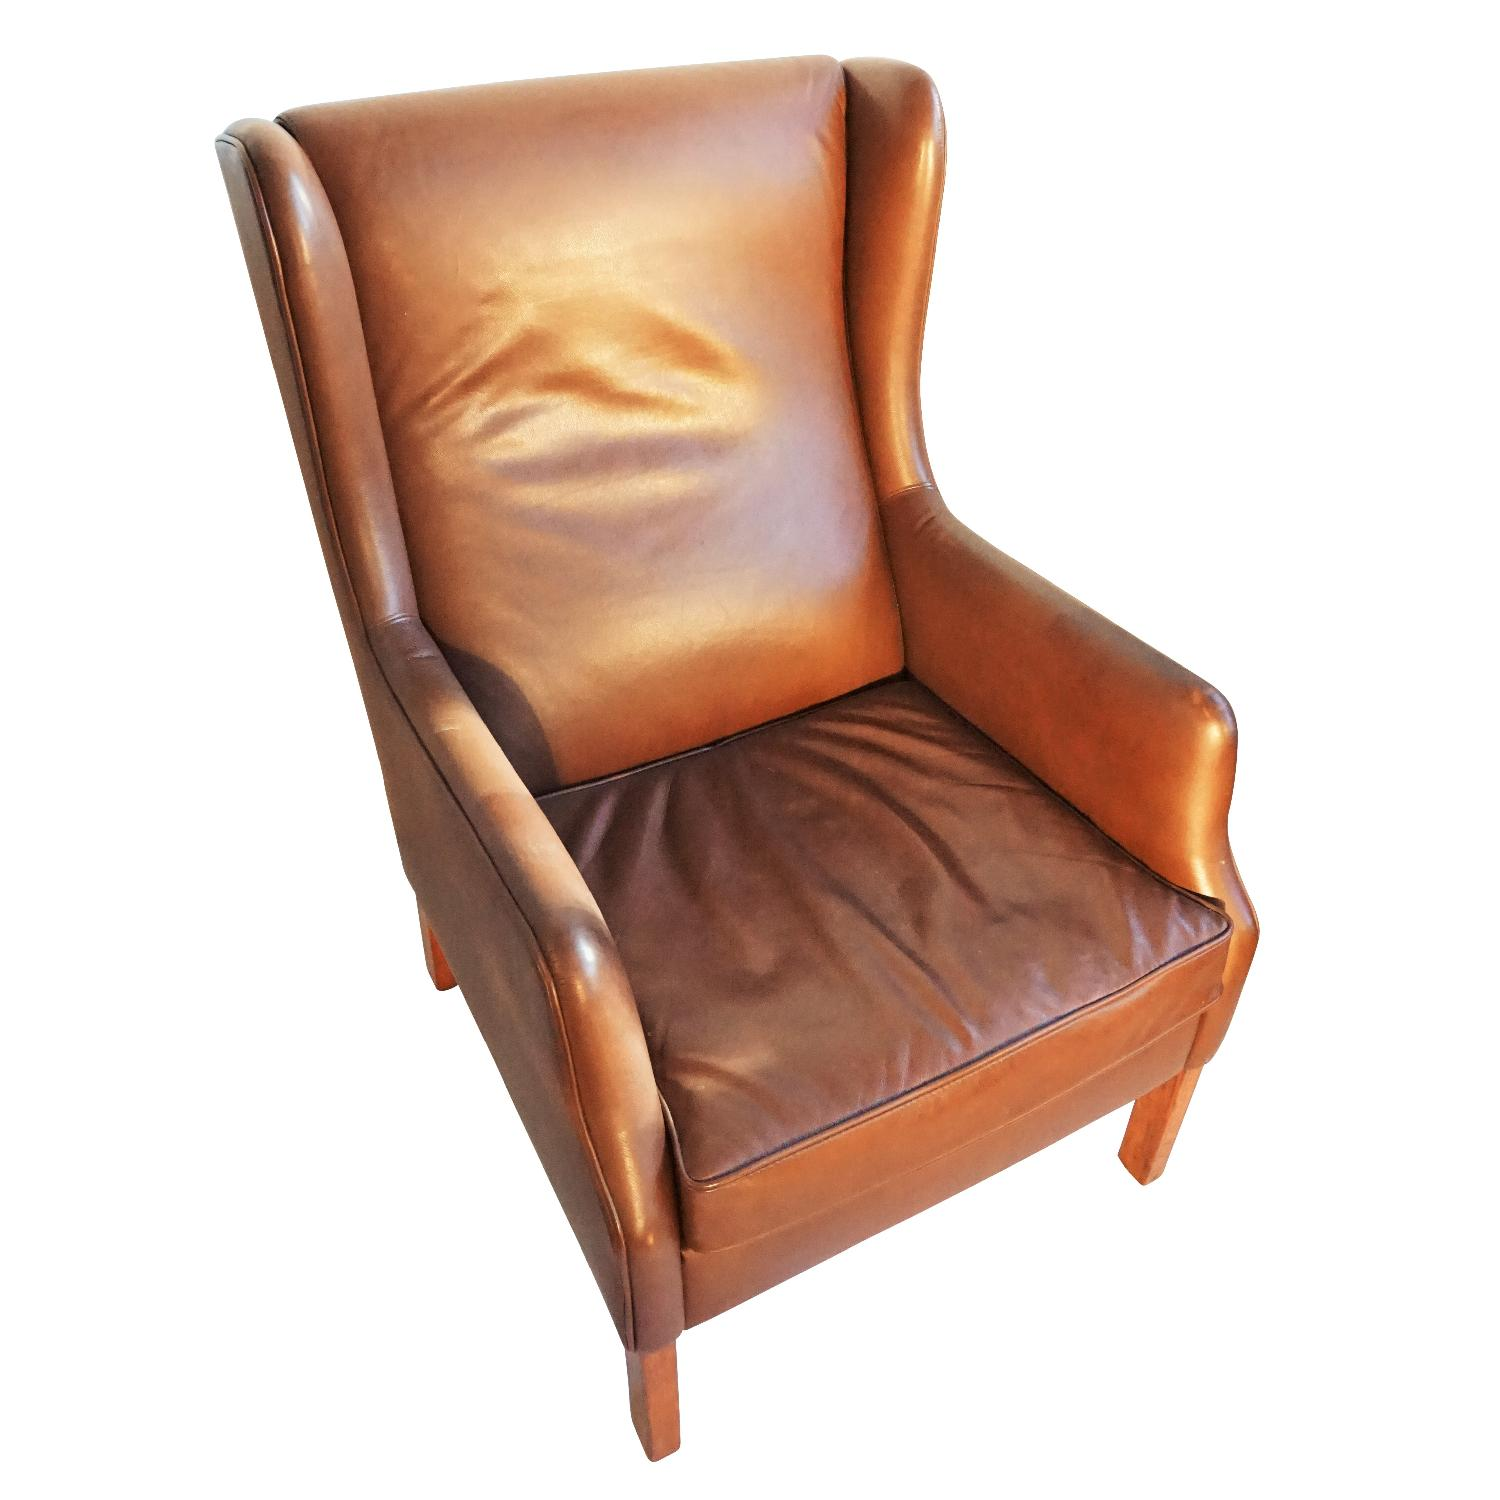 Danish Wingback Leather Lounge Chair - image-2